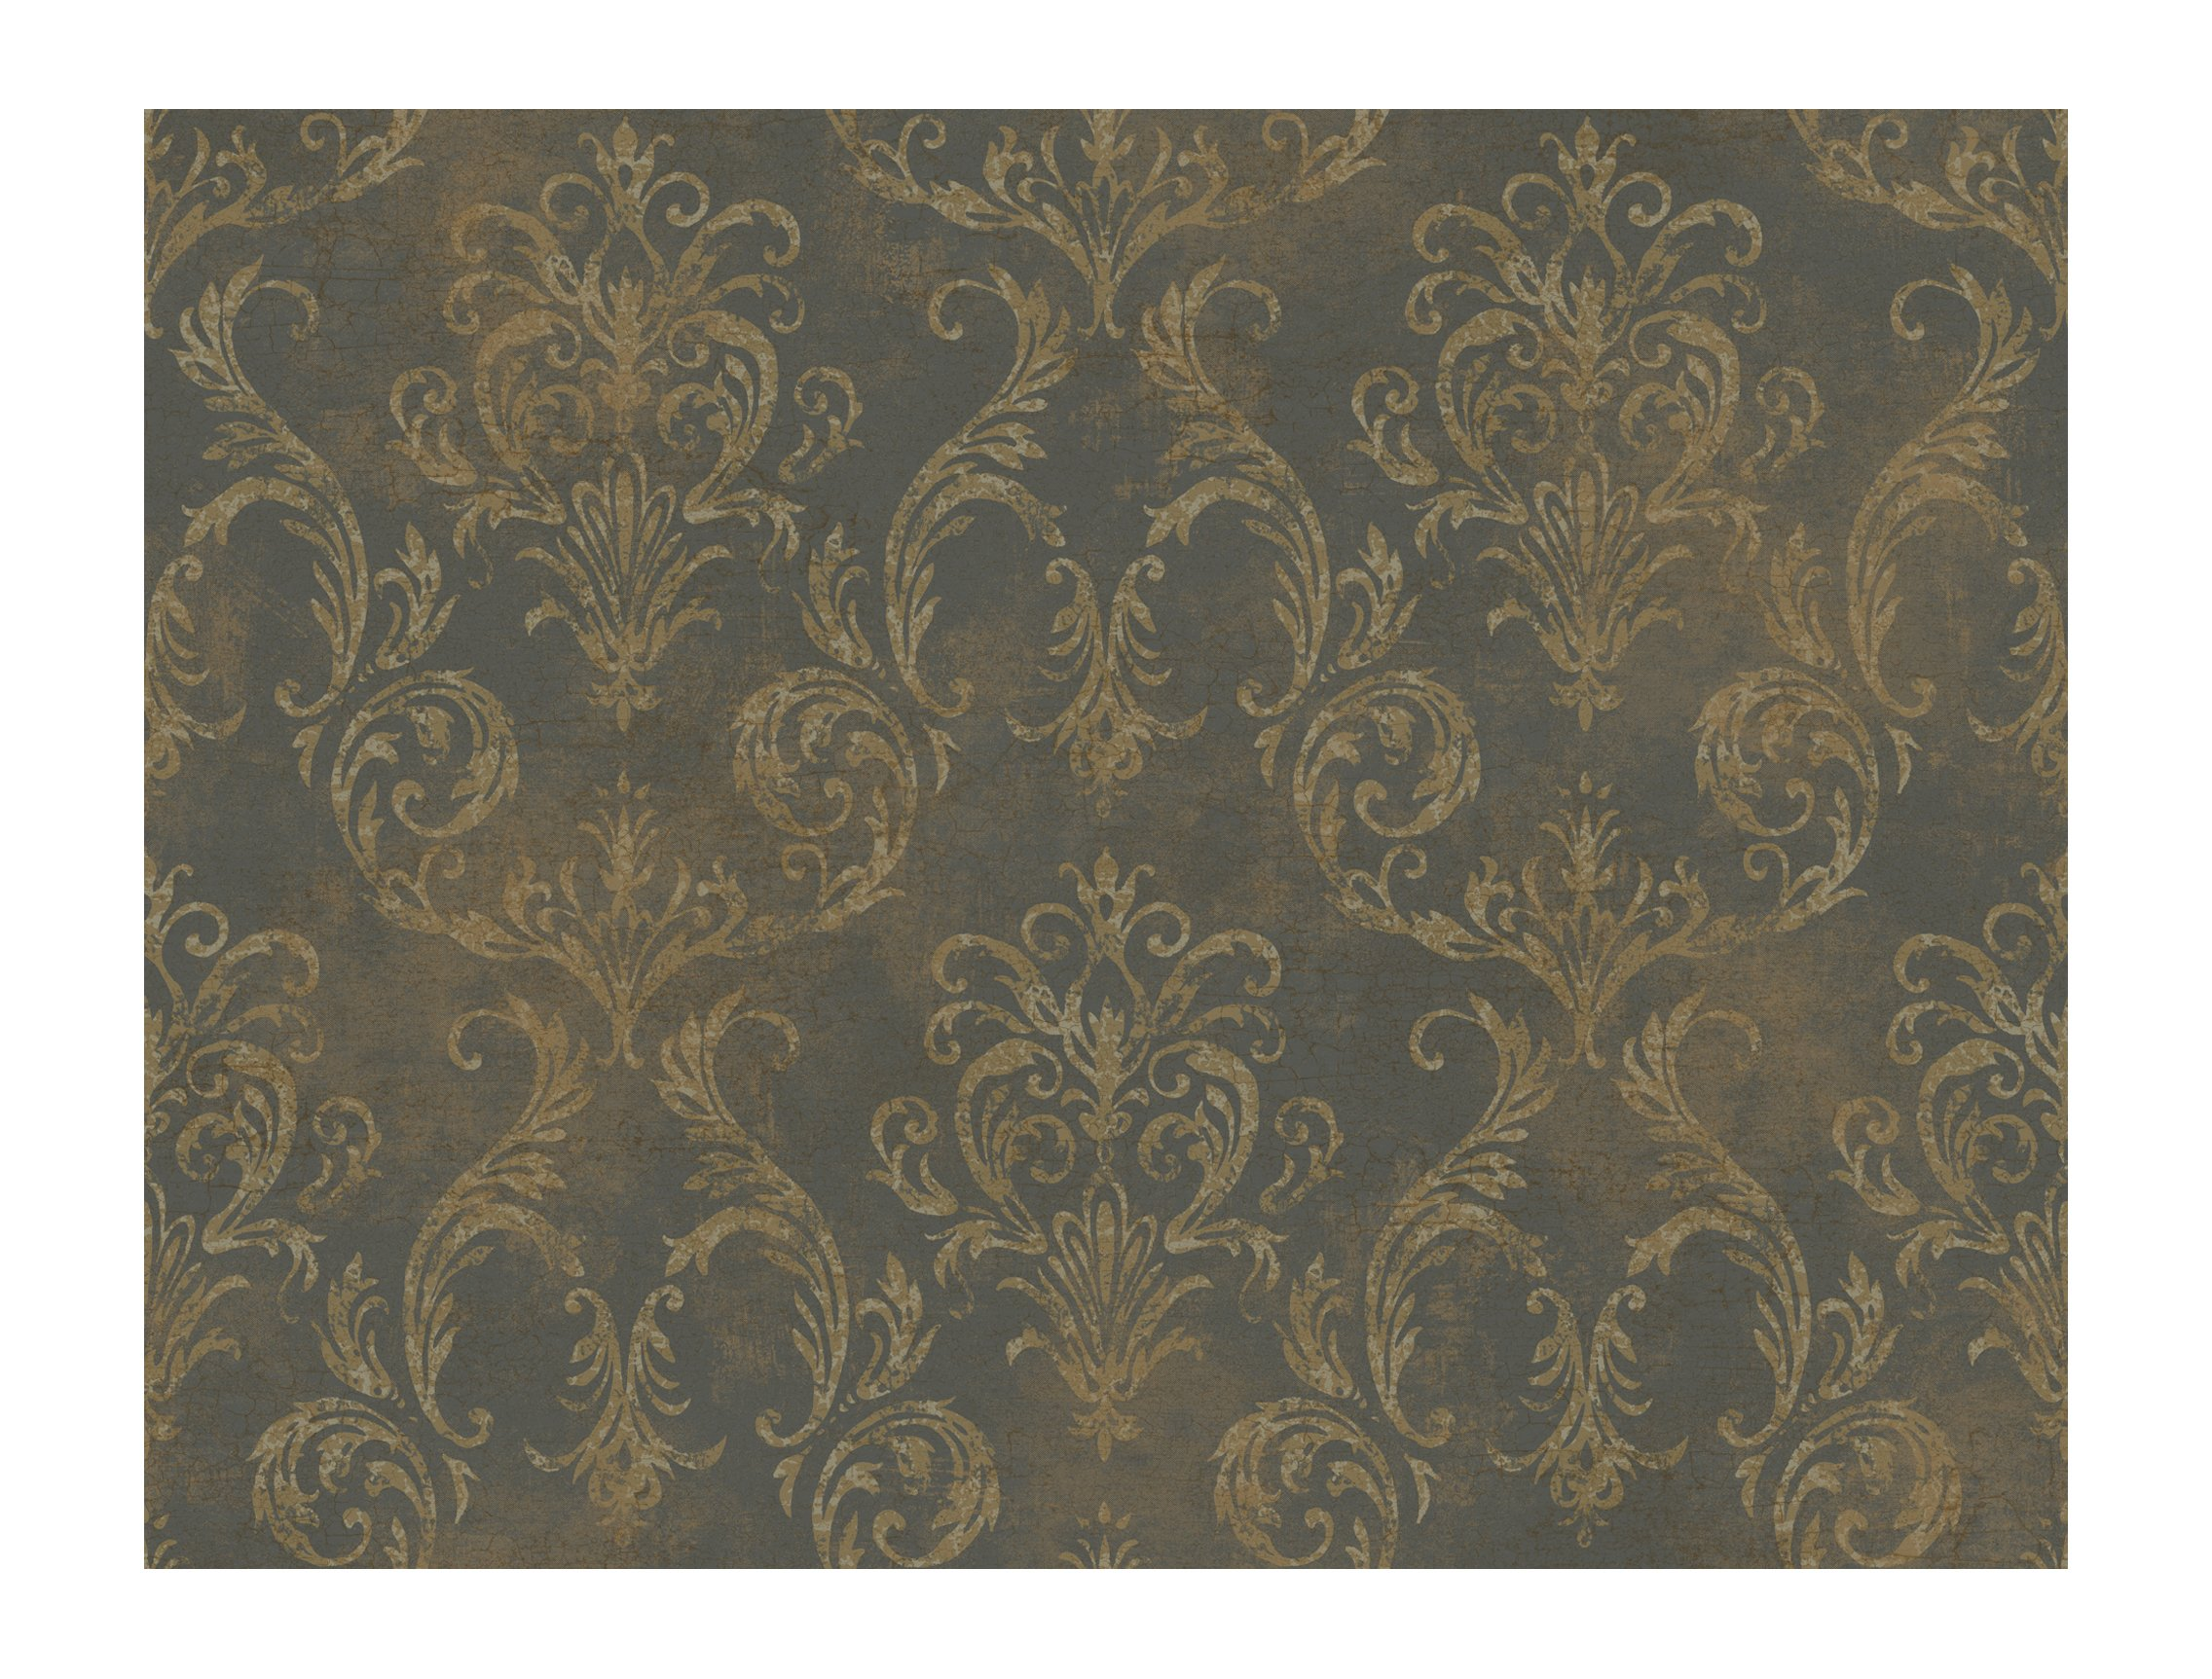 York Wallcoverings GL4657 Brandywine Delia Damask Wallpaper, Deep Pearled Platinum/Bronze/Cool Tan by York Wallcoverings